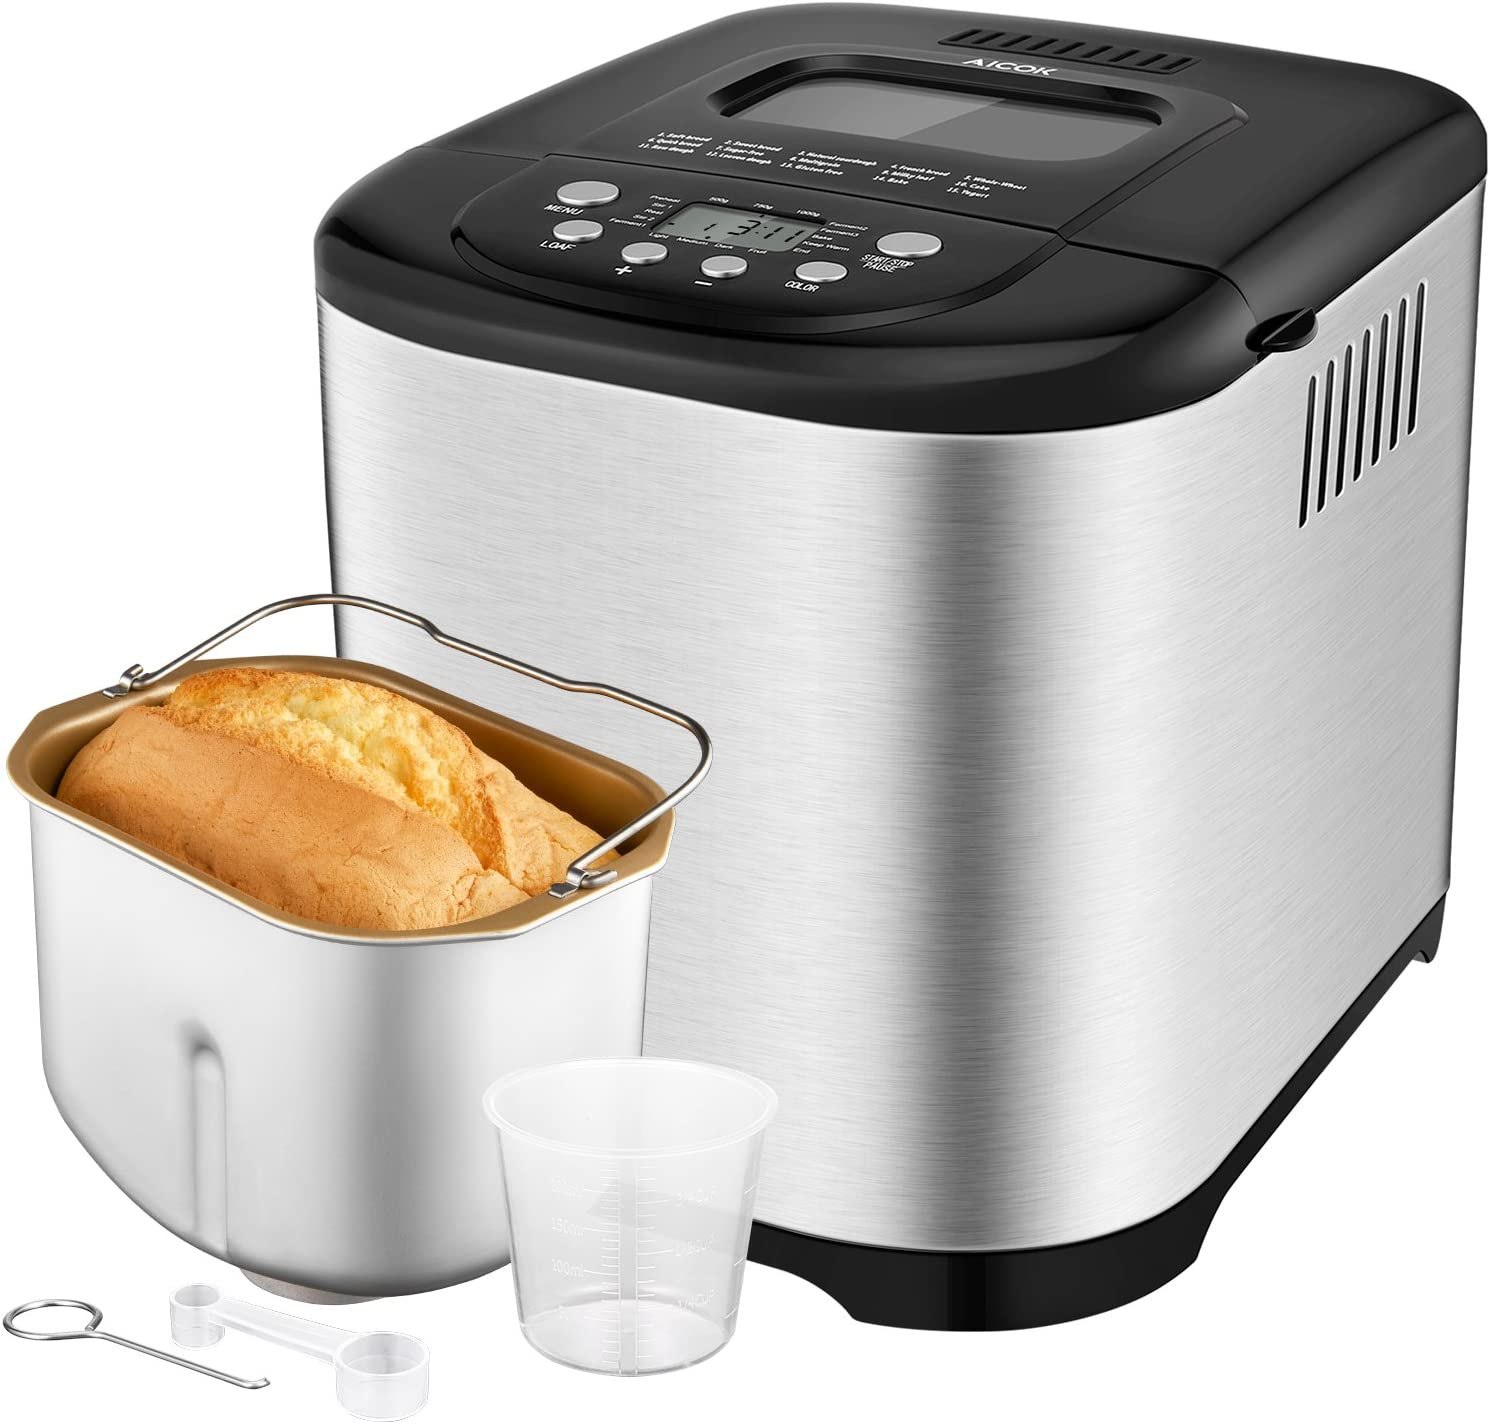 Programmable Bread Maker 2018 Upgraded , Aicok 2.2LB Stainless Steel Bread Machine with Gluten Free Menu setting, 3 Loaf Sizes, 3 Crust Colors, 15-Hour Delay Timer, 1 Hour Keep Warm